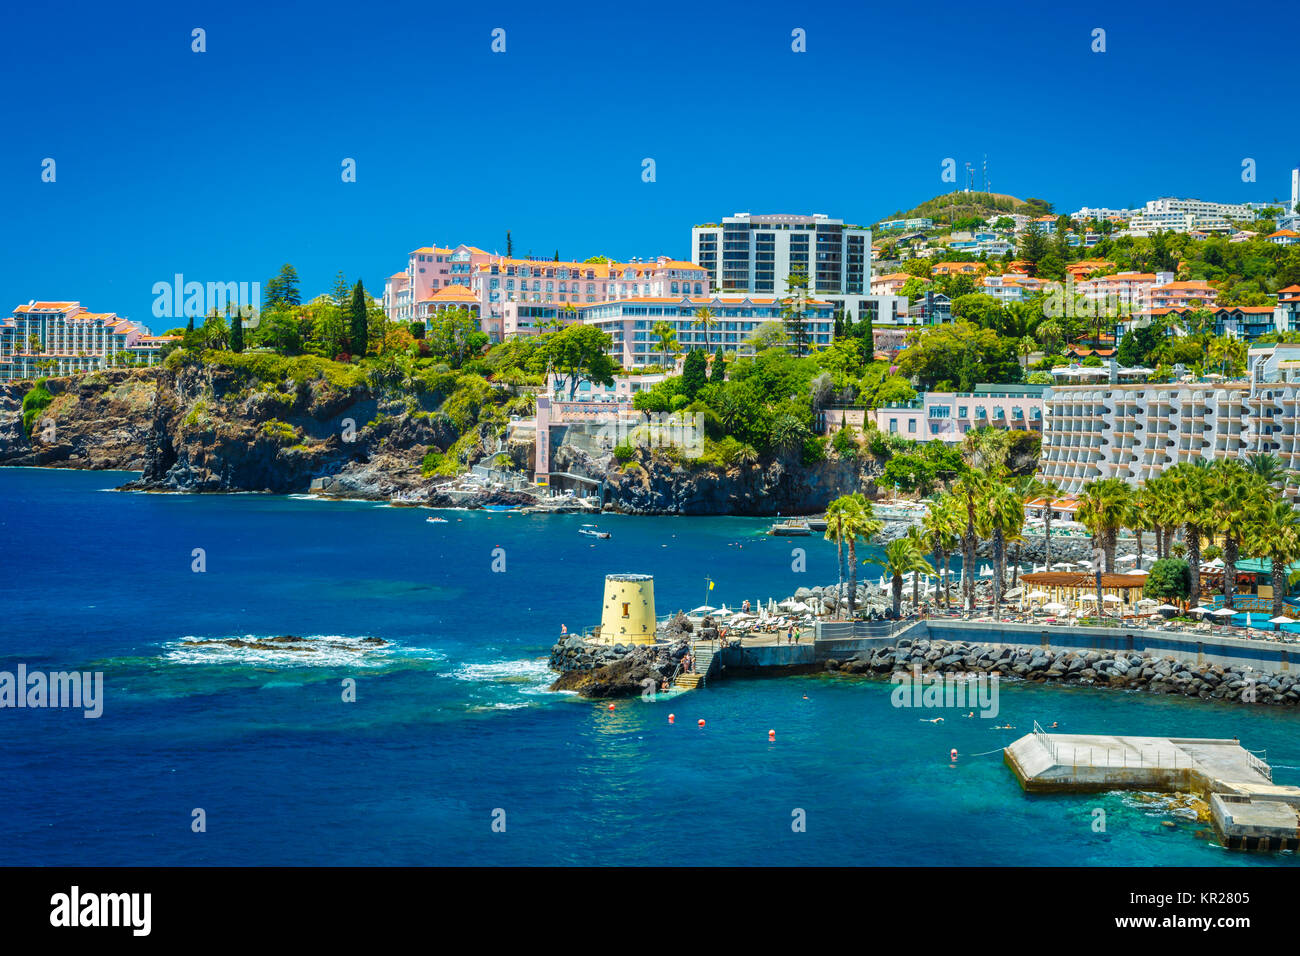 City view. Funchal. Madeira, Portugal, Europe. - Stock Image